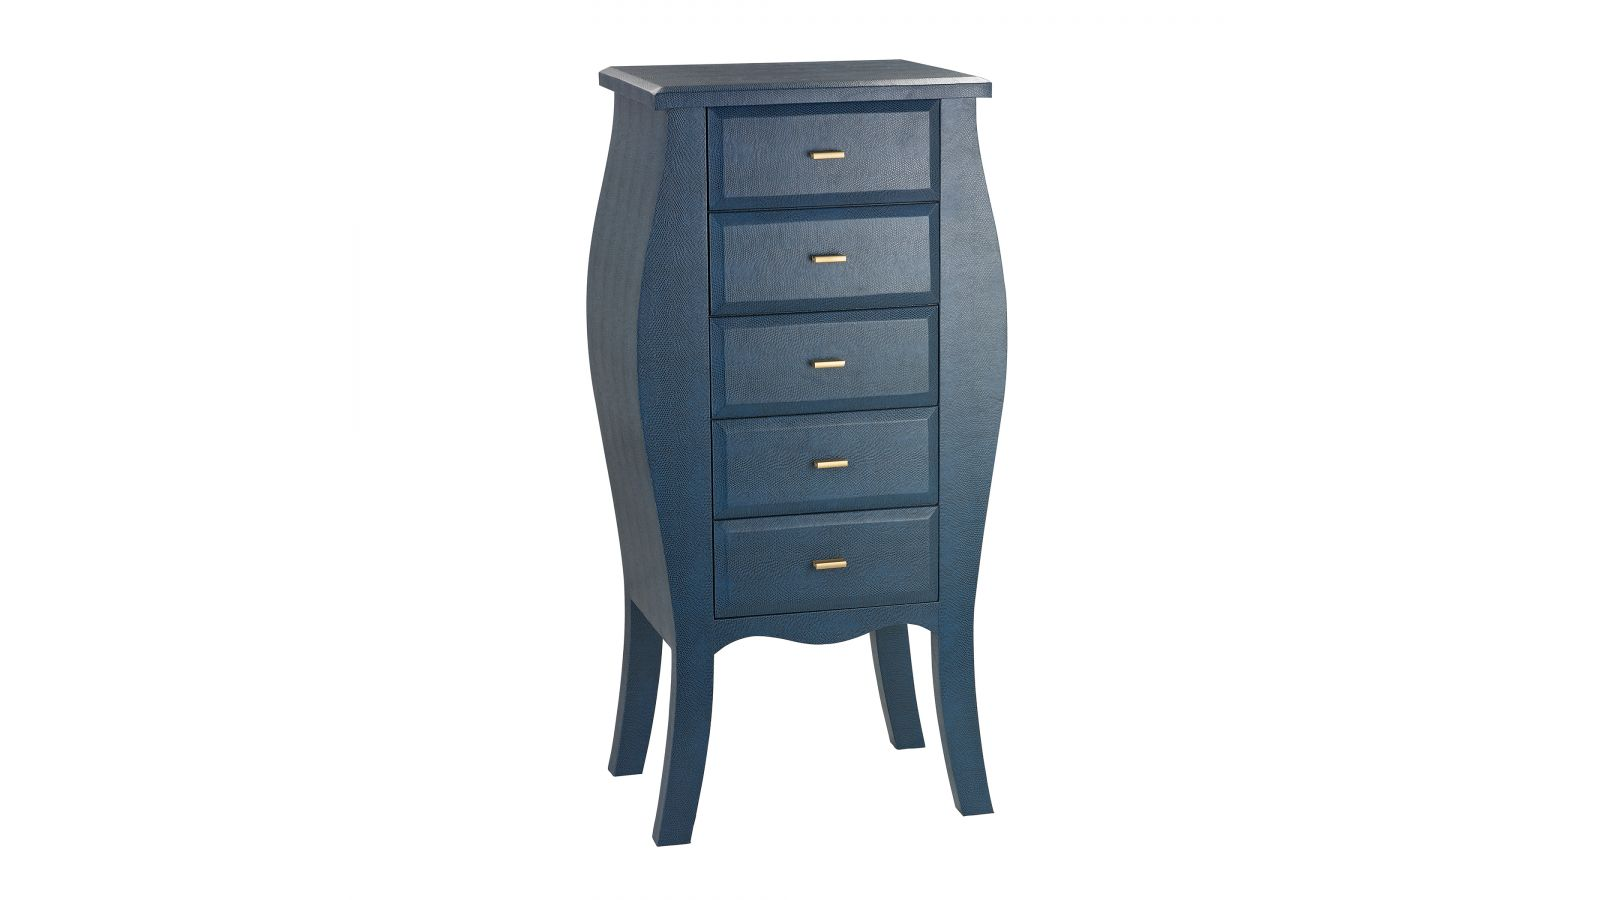 180-004 - Bowed Shagreen Chest in Navy